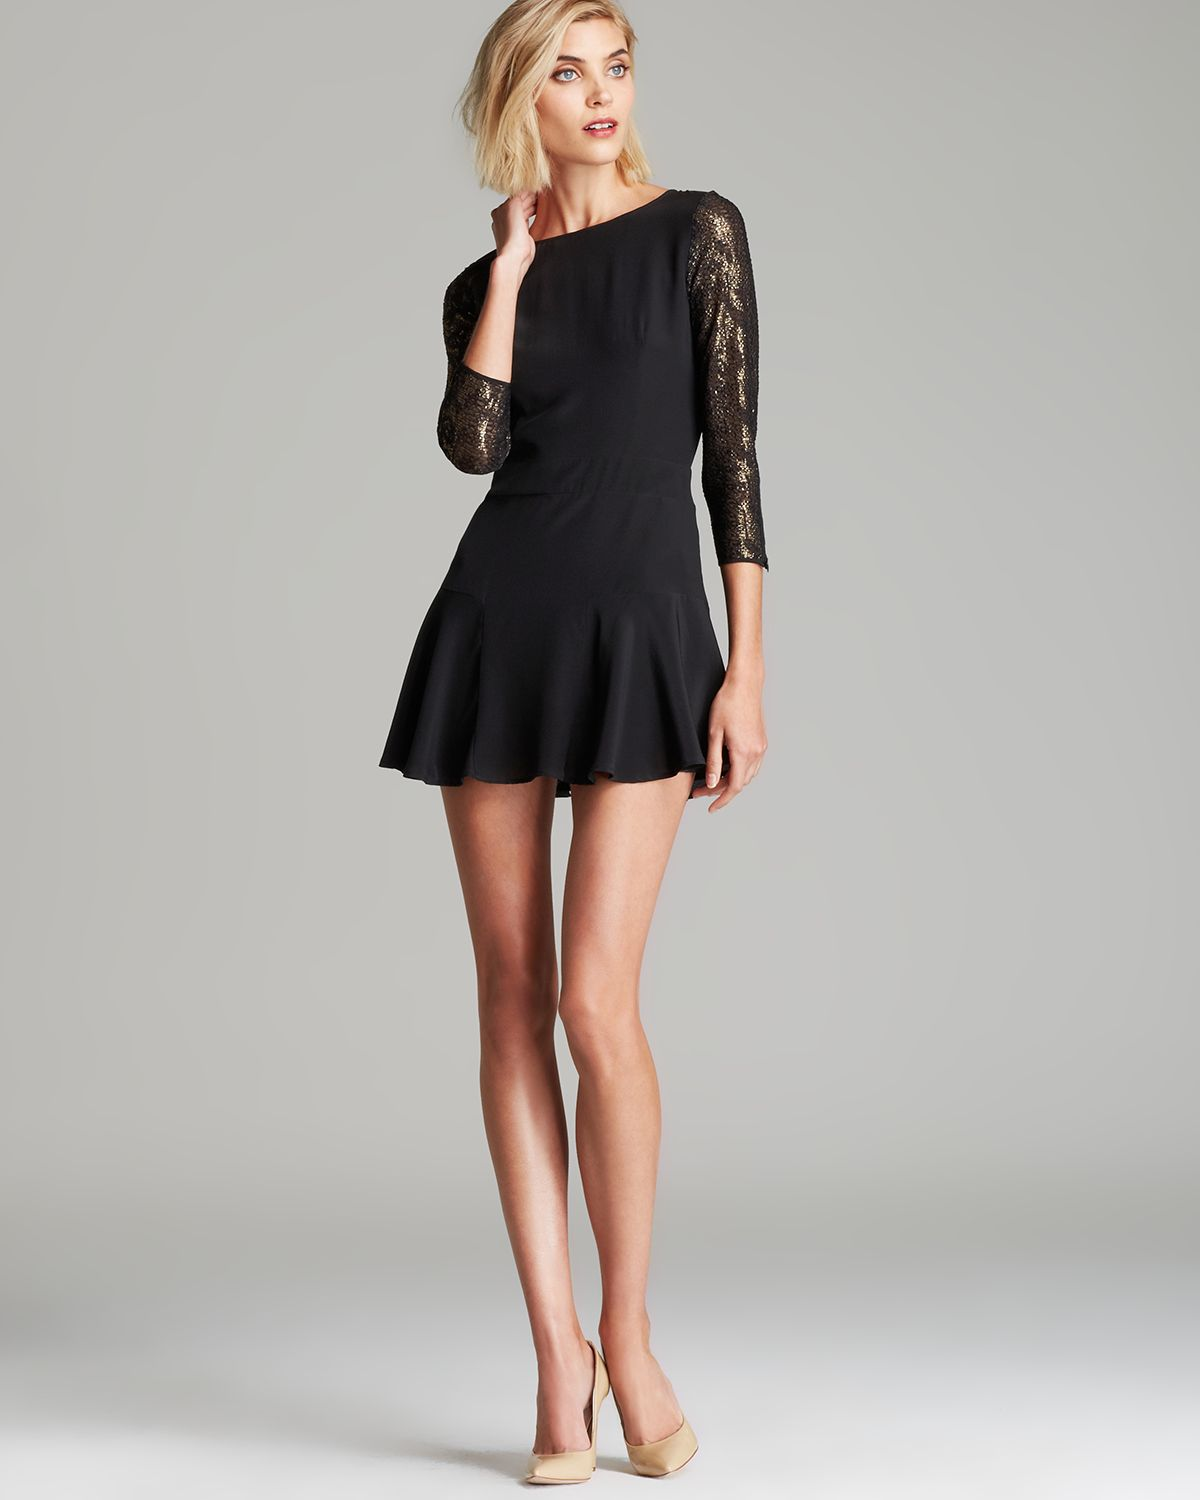 Black dress lace sleeves - Twelfth Street Cynthia Vincent Dress Flounce Lace Sleeve In Black Twelfth Street Cynthia Vincent Dress Flounce Lace Sleeve In Black